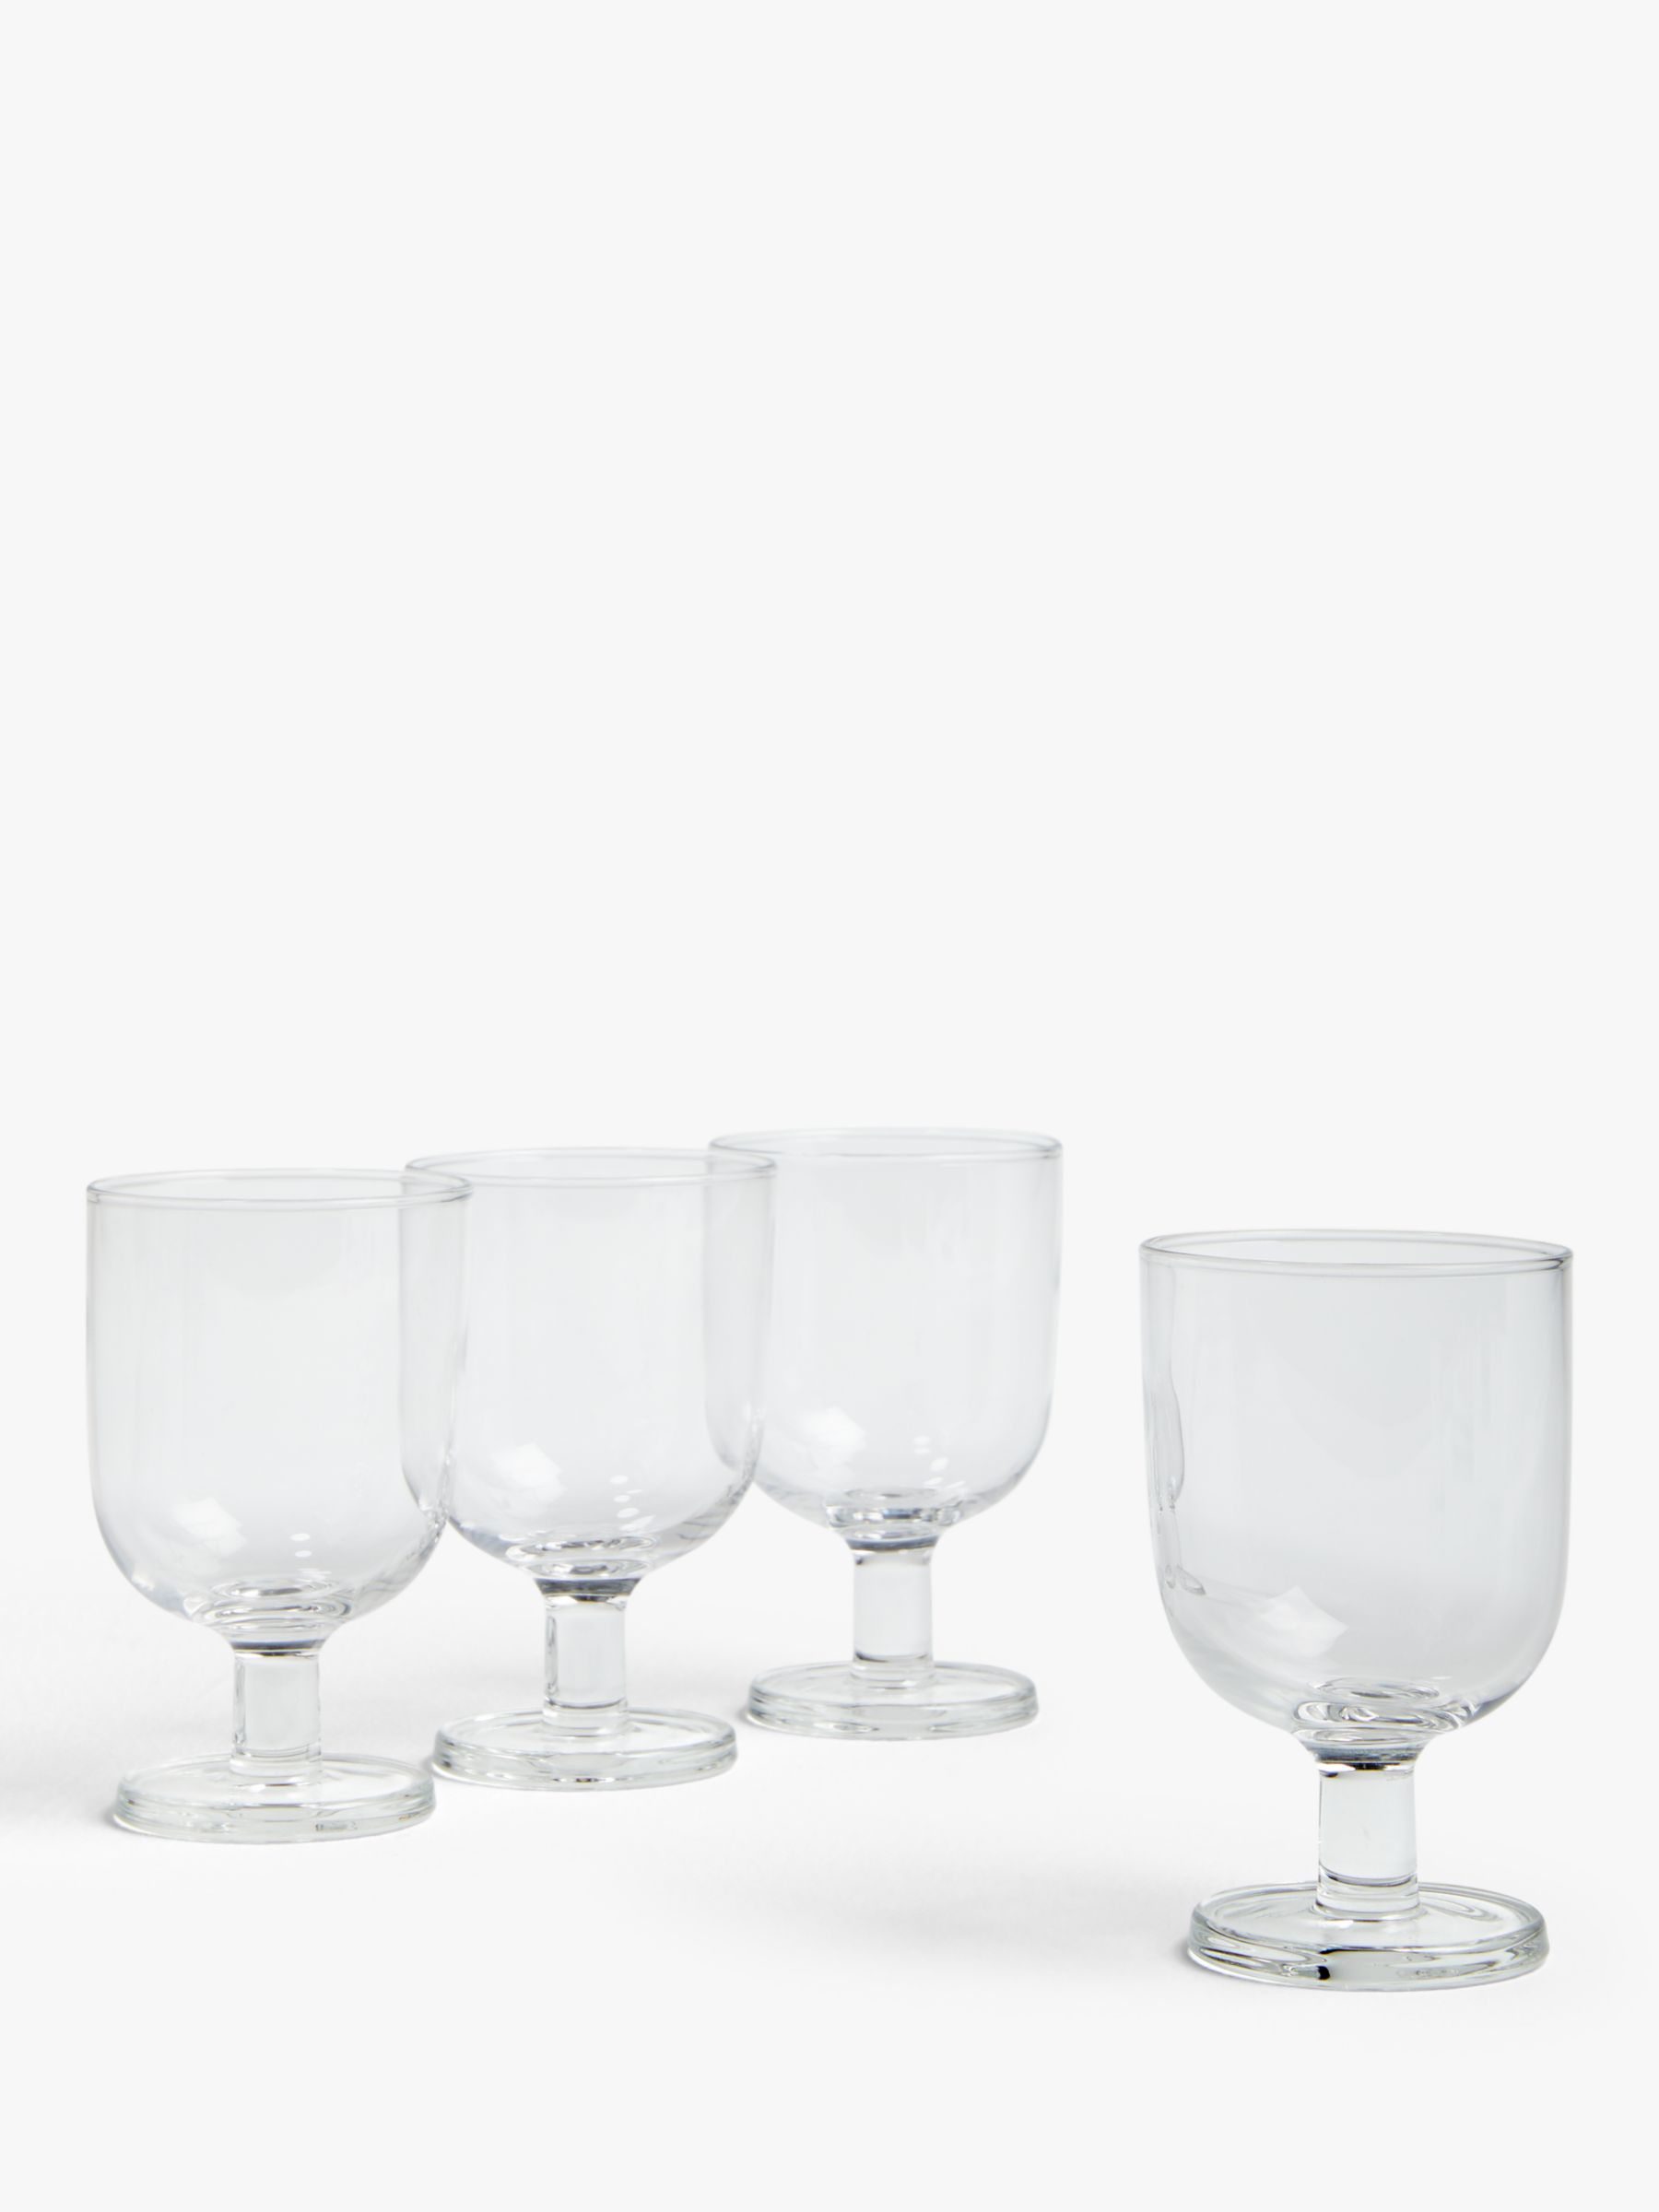 House by John Lewis House by John Lewis Stackable Wine Glasses, Clear, Set of 4